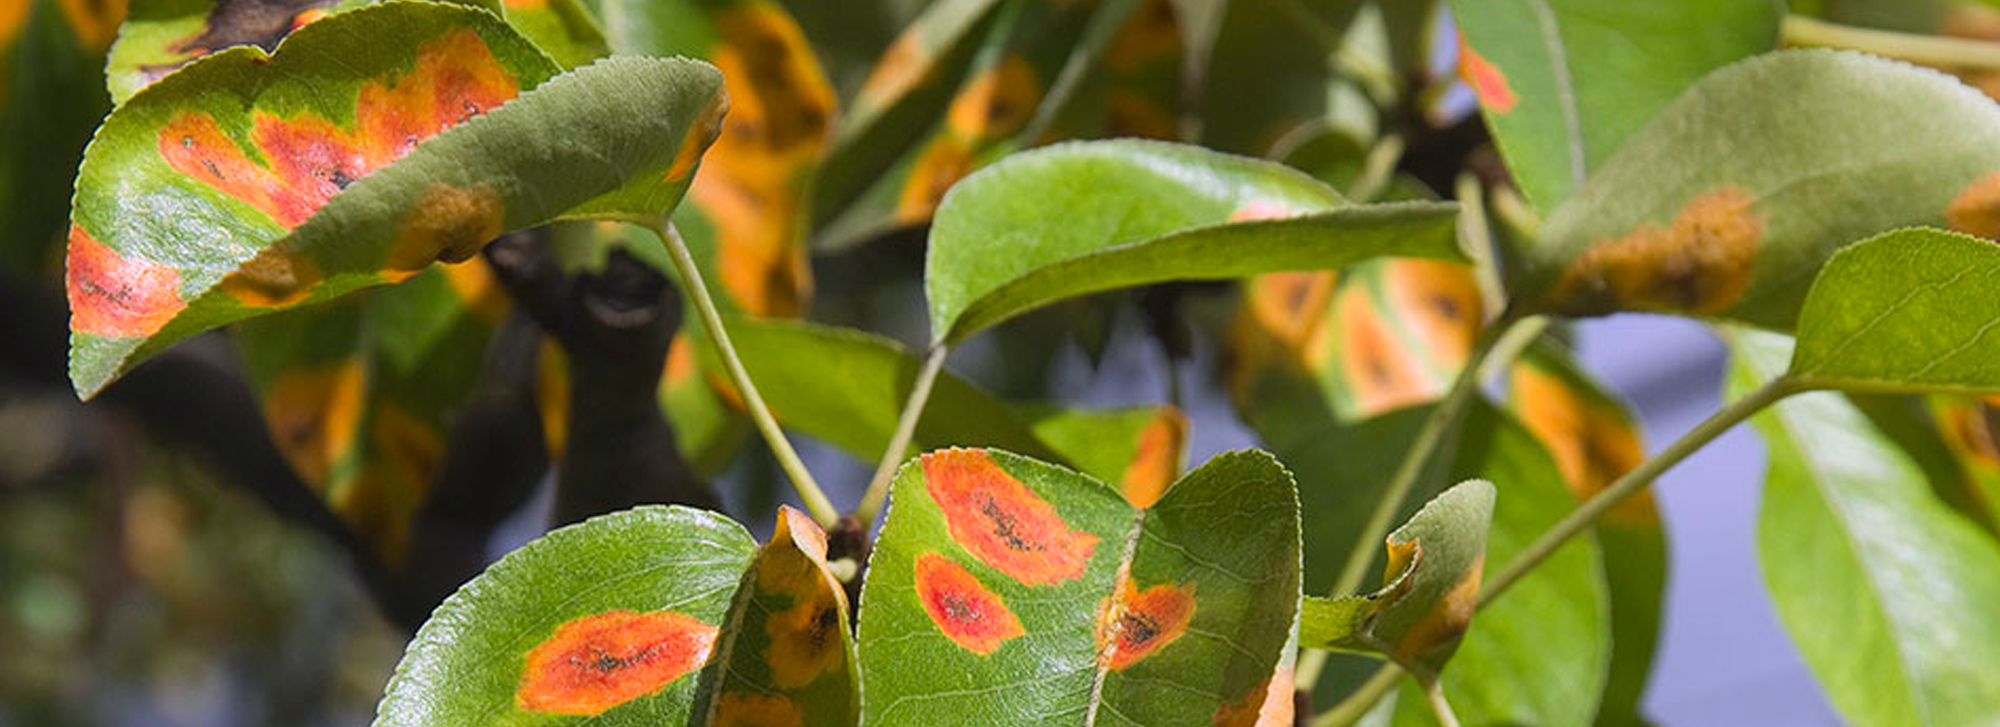 Garden Pests and Diseases